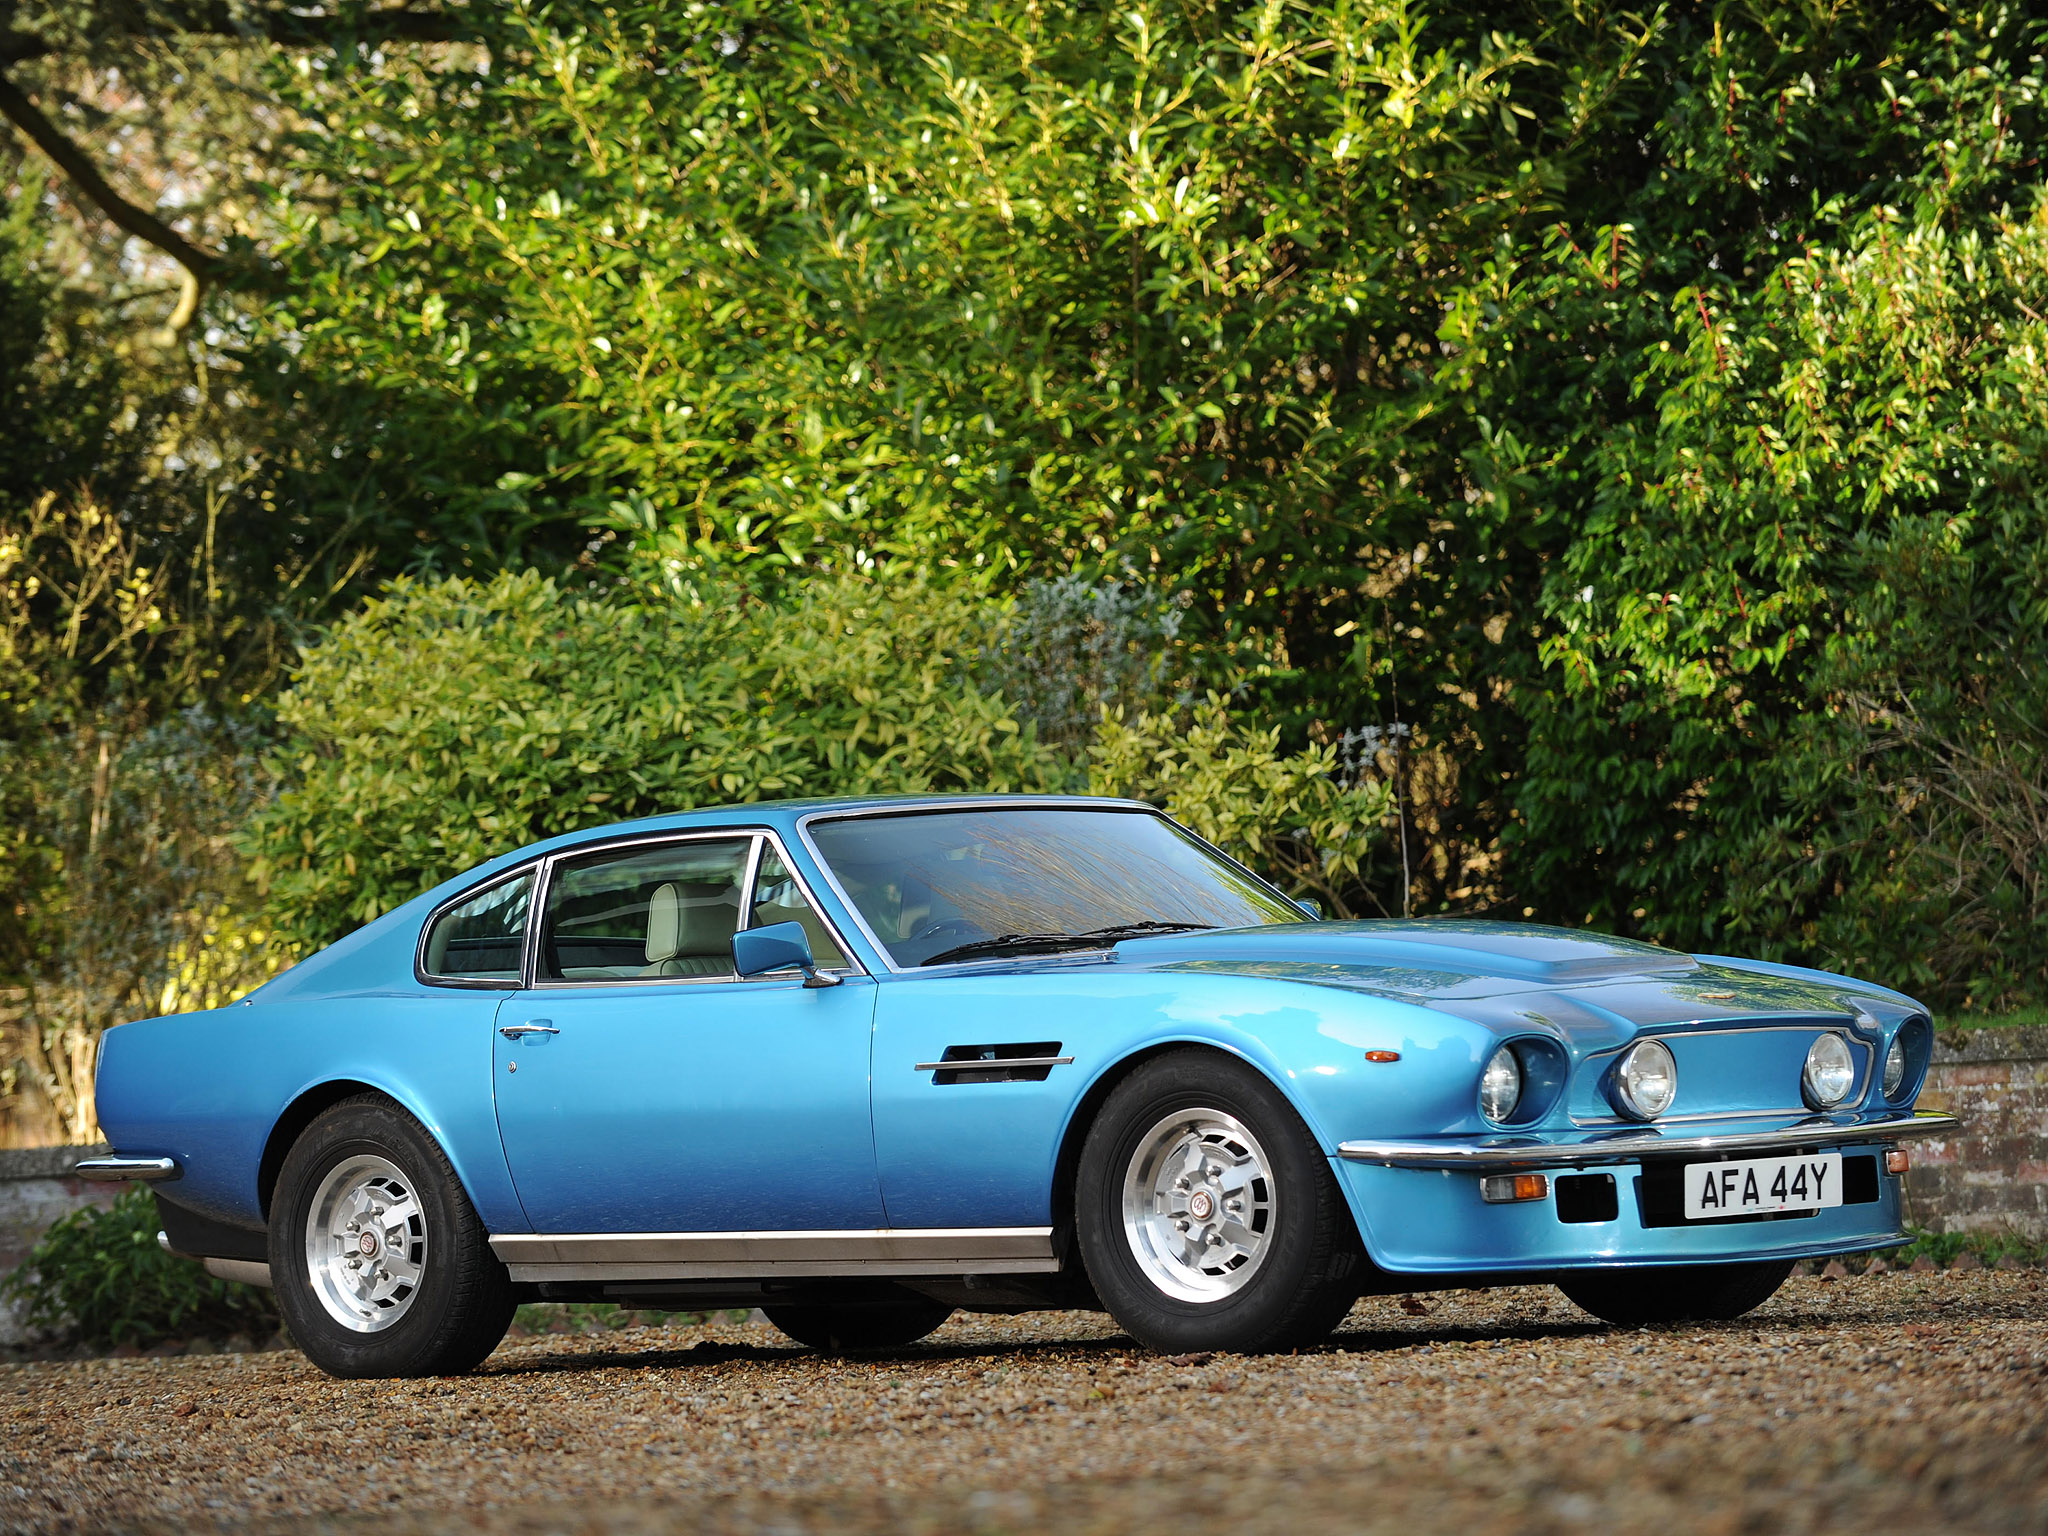 1977 Aston Martin V8 Vantage Uk Spec Muscle Supercar V 8 I